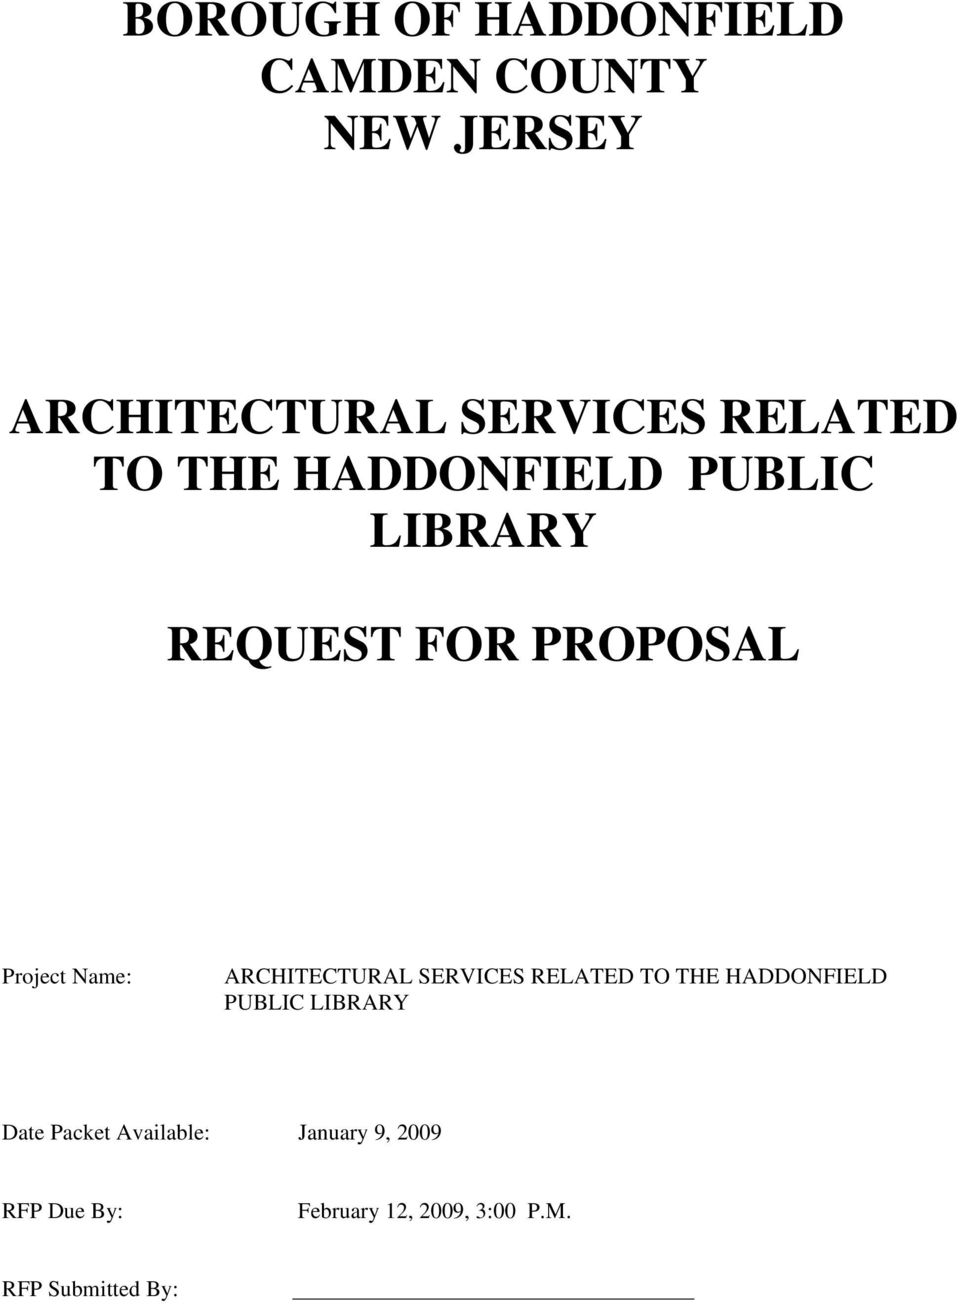 ARCHITECTURAL SERVICES RELATED TO THE HADDONFIELD PUBLIC LIBRARY Date Packet